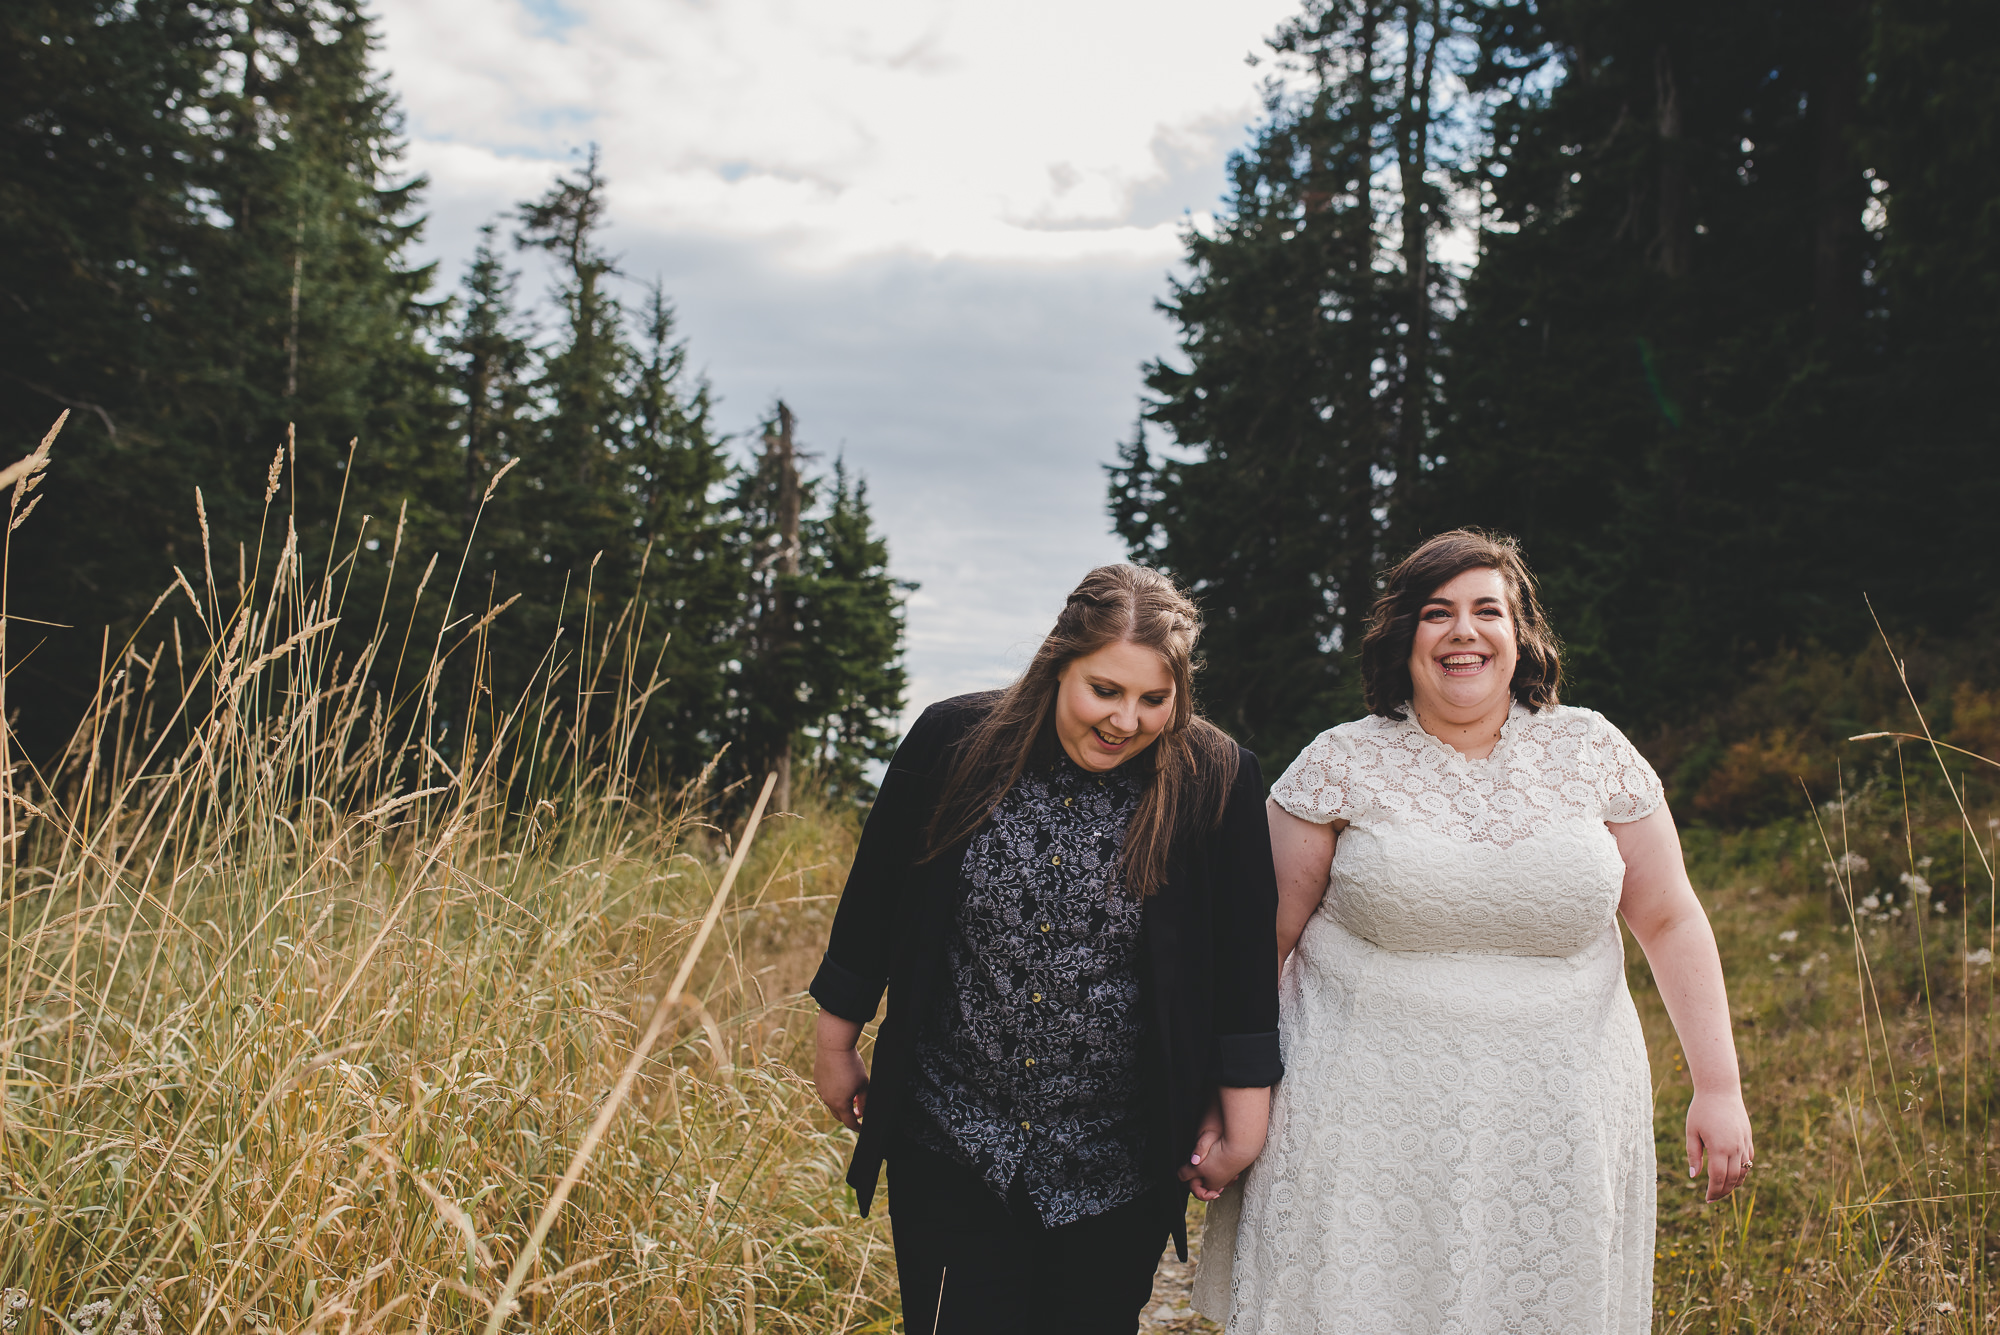 Peak of Vancouver Wedding | Vancouver LGBTQ Wedding Photographer